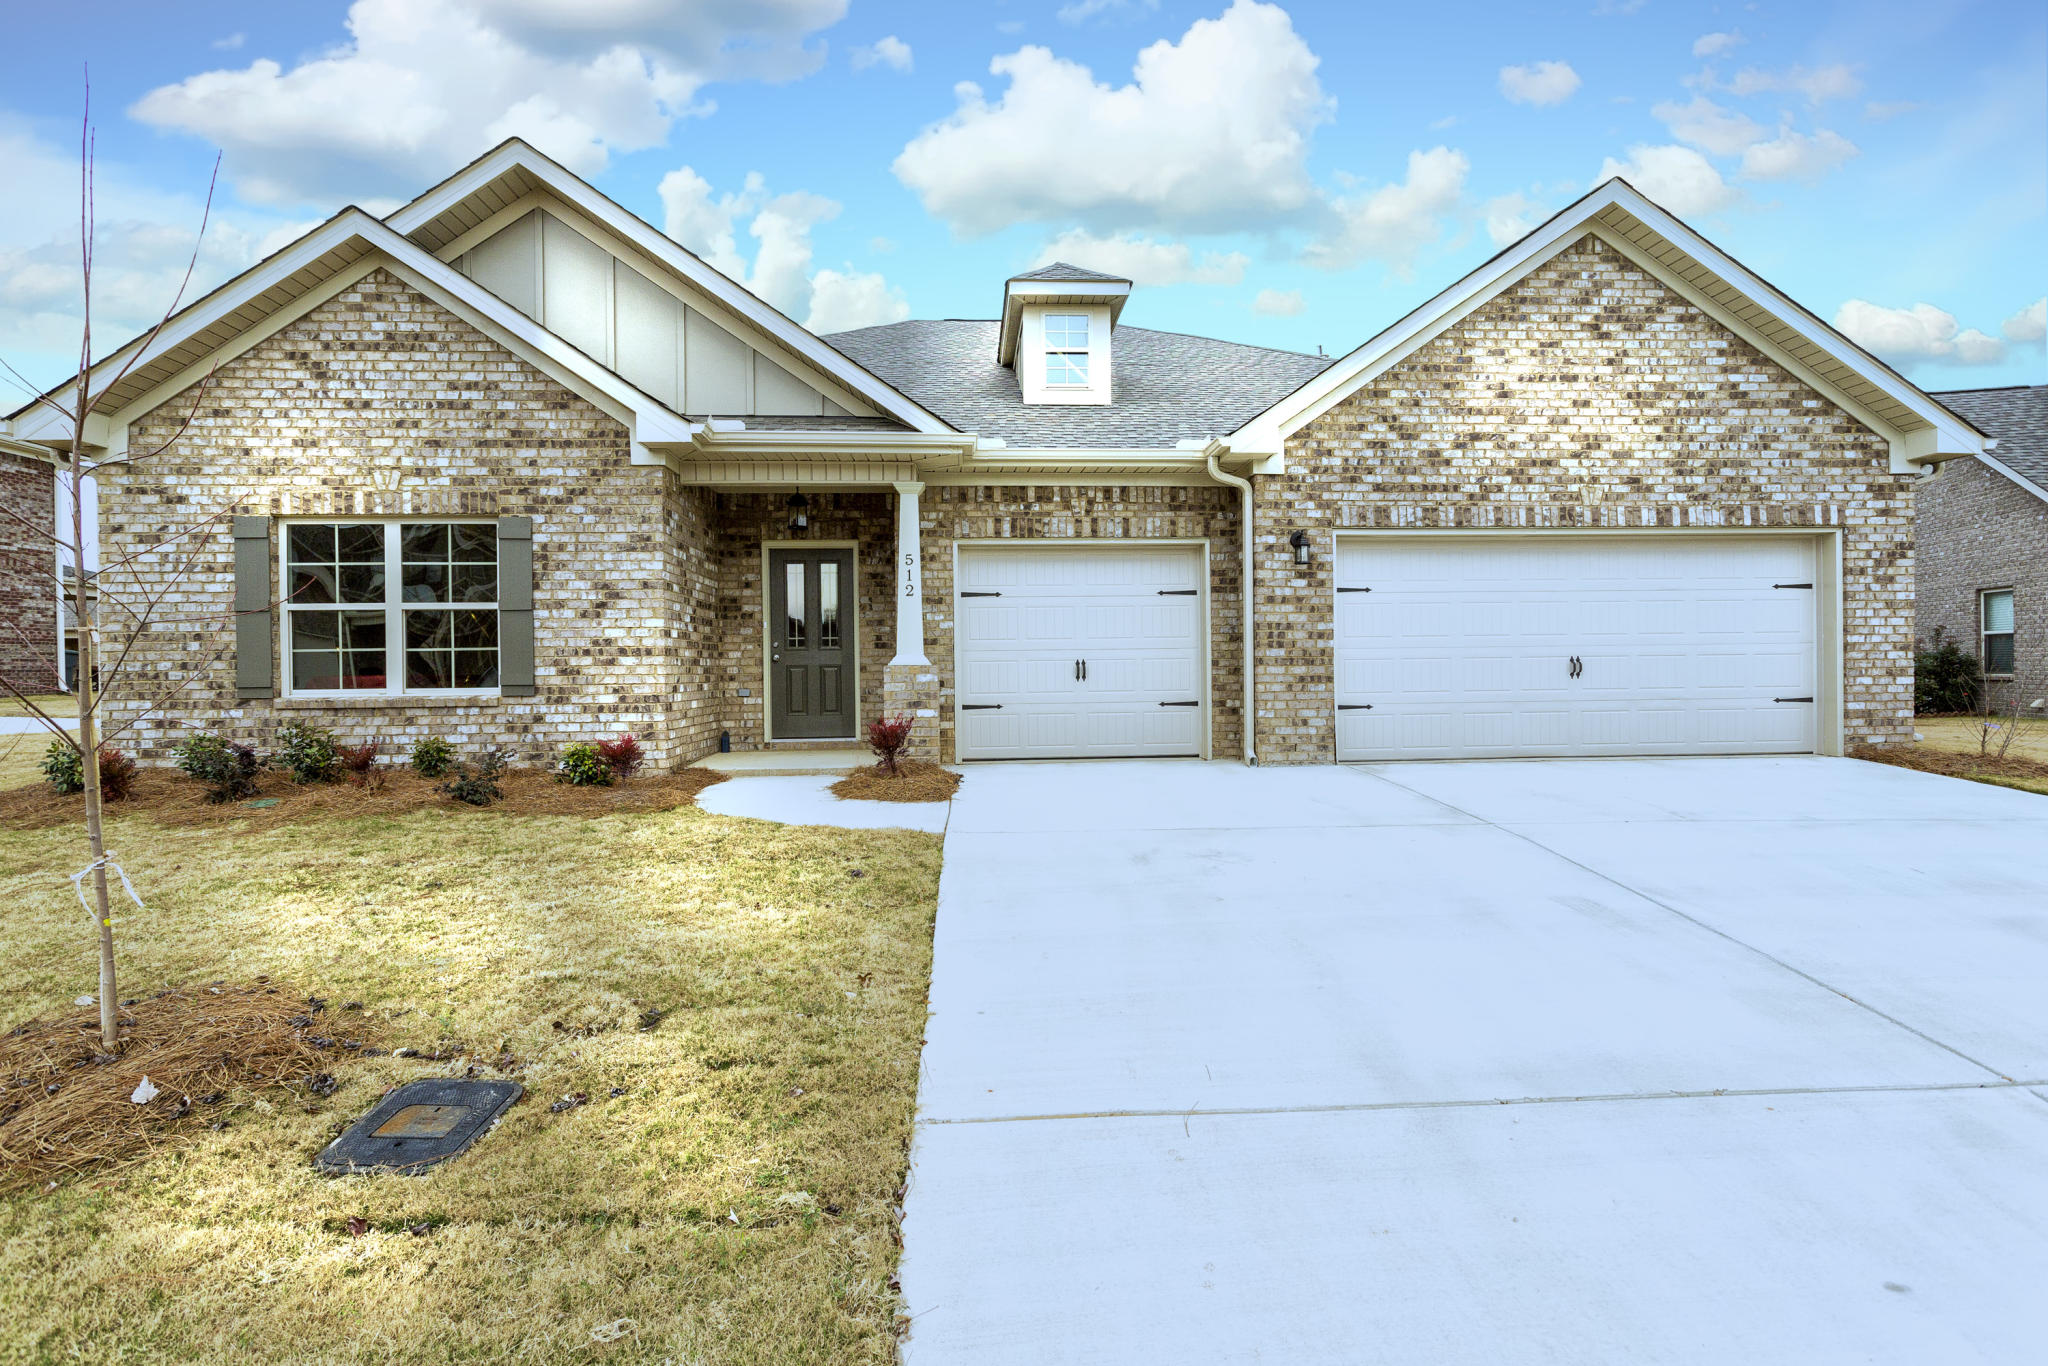 This is the Brand New Image Of Patio Homes for Sale Decatur Al